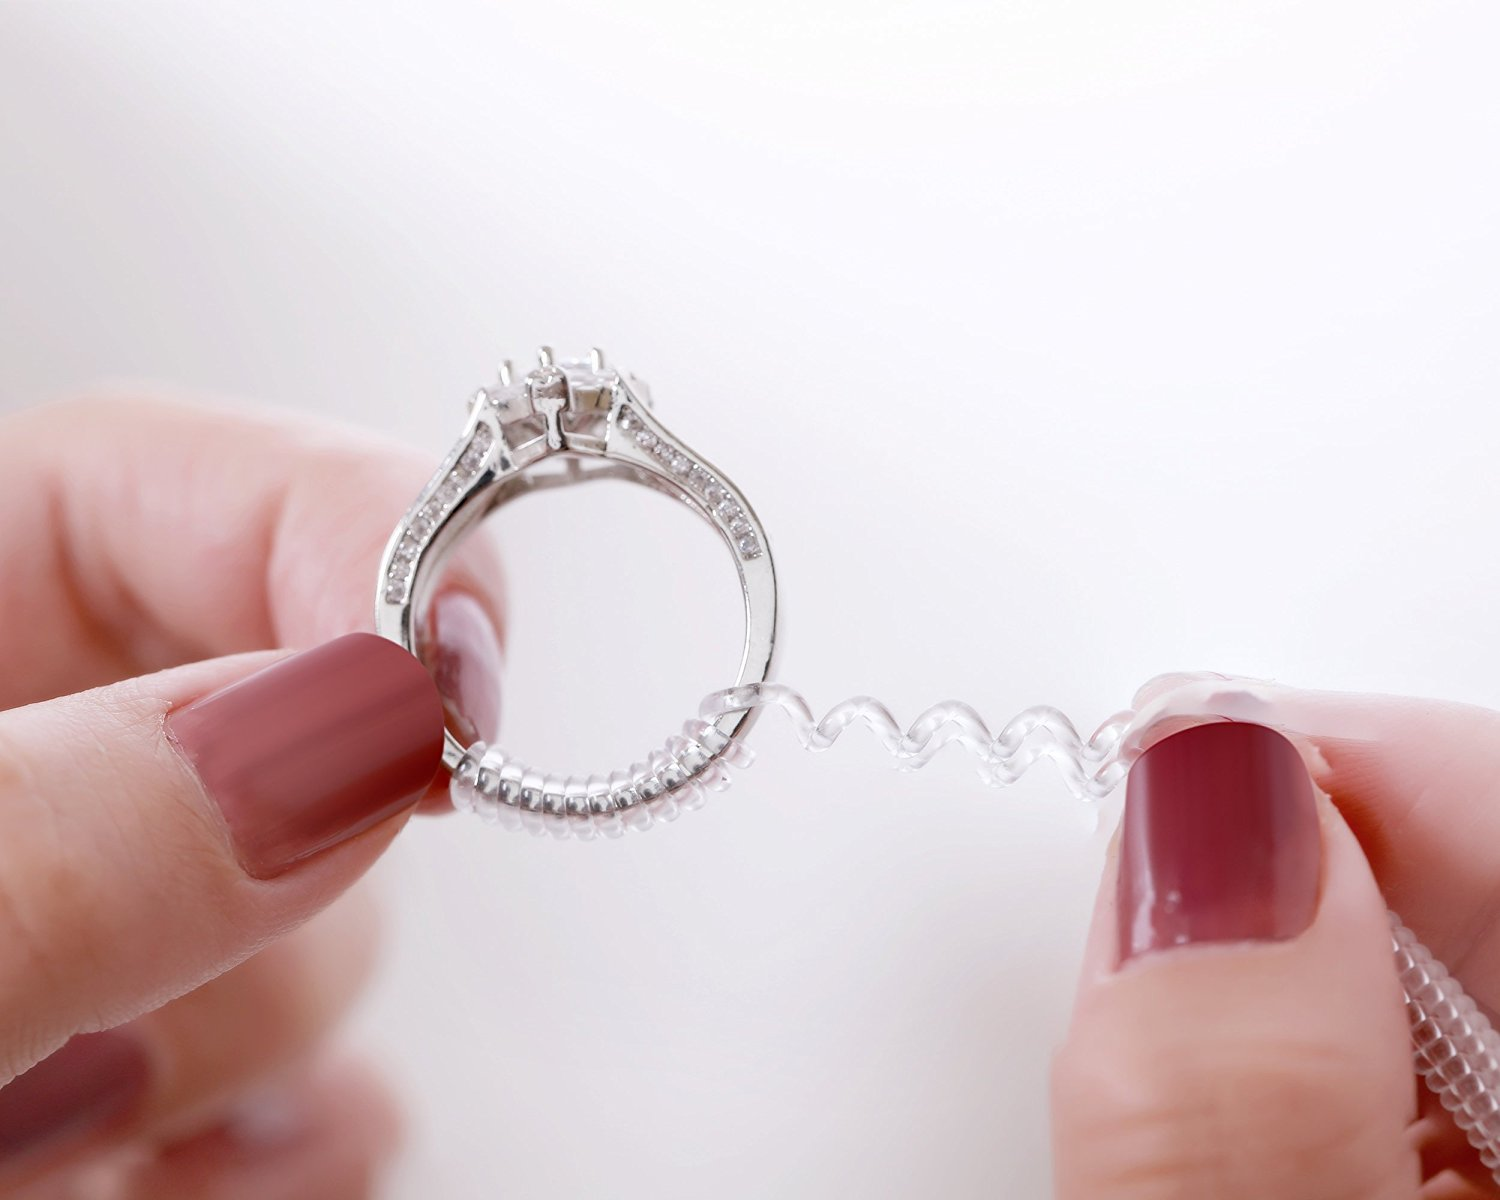 How To Keep Wedding Ring From Spinning The #1 Cheap U0026 Easy Fix